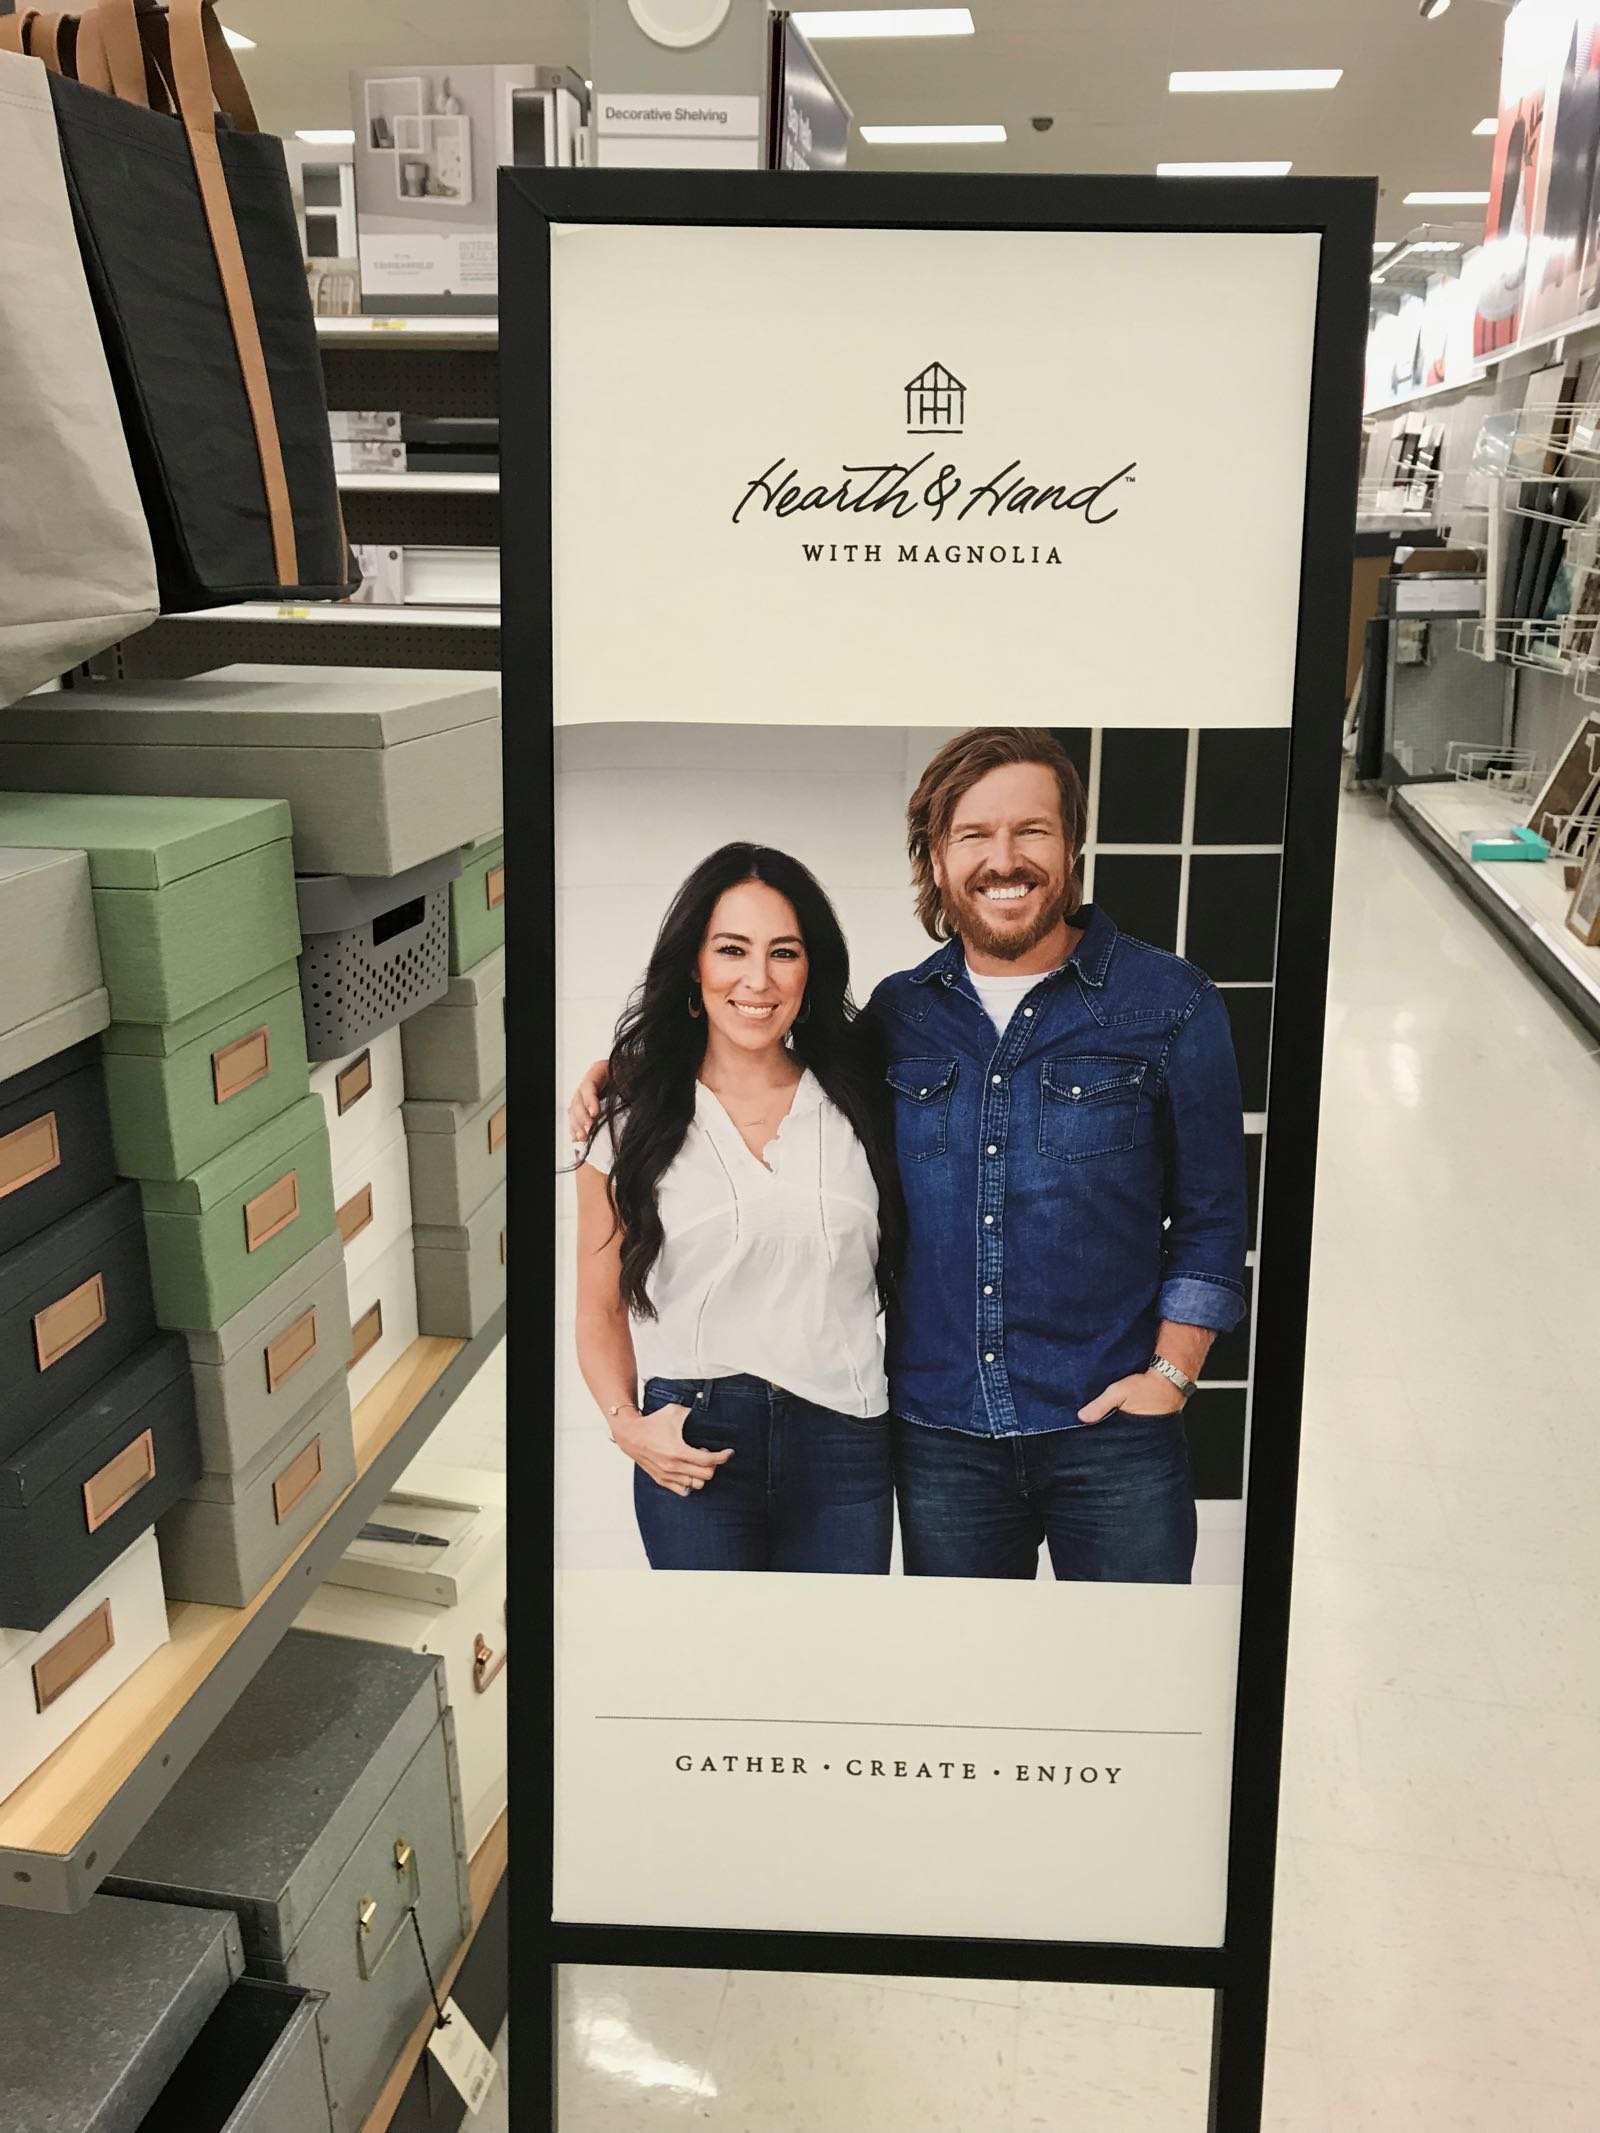 See in-store photos of Hearth and Hand by Magnolia at Target.